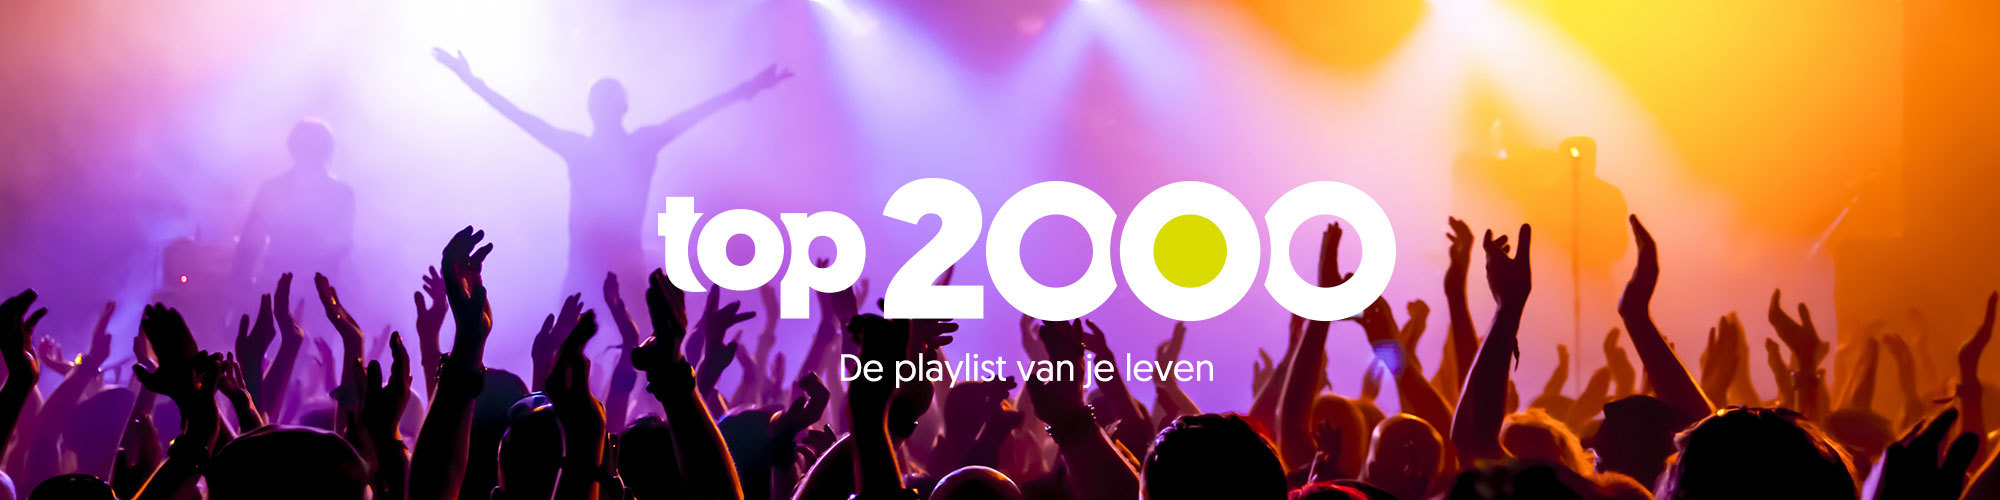 Joe carrousel top2000 finaal playlistvanjeleven 8